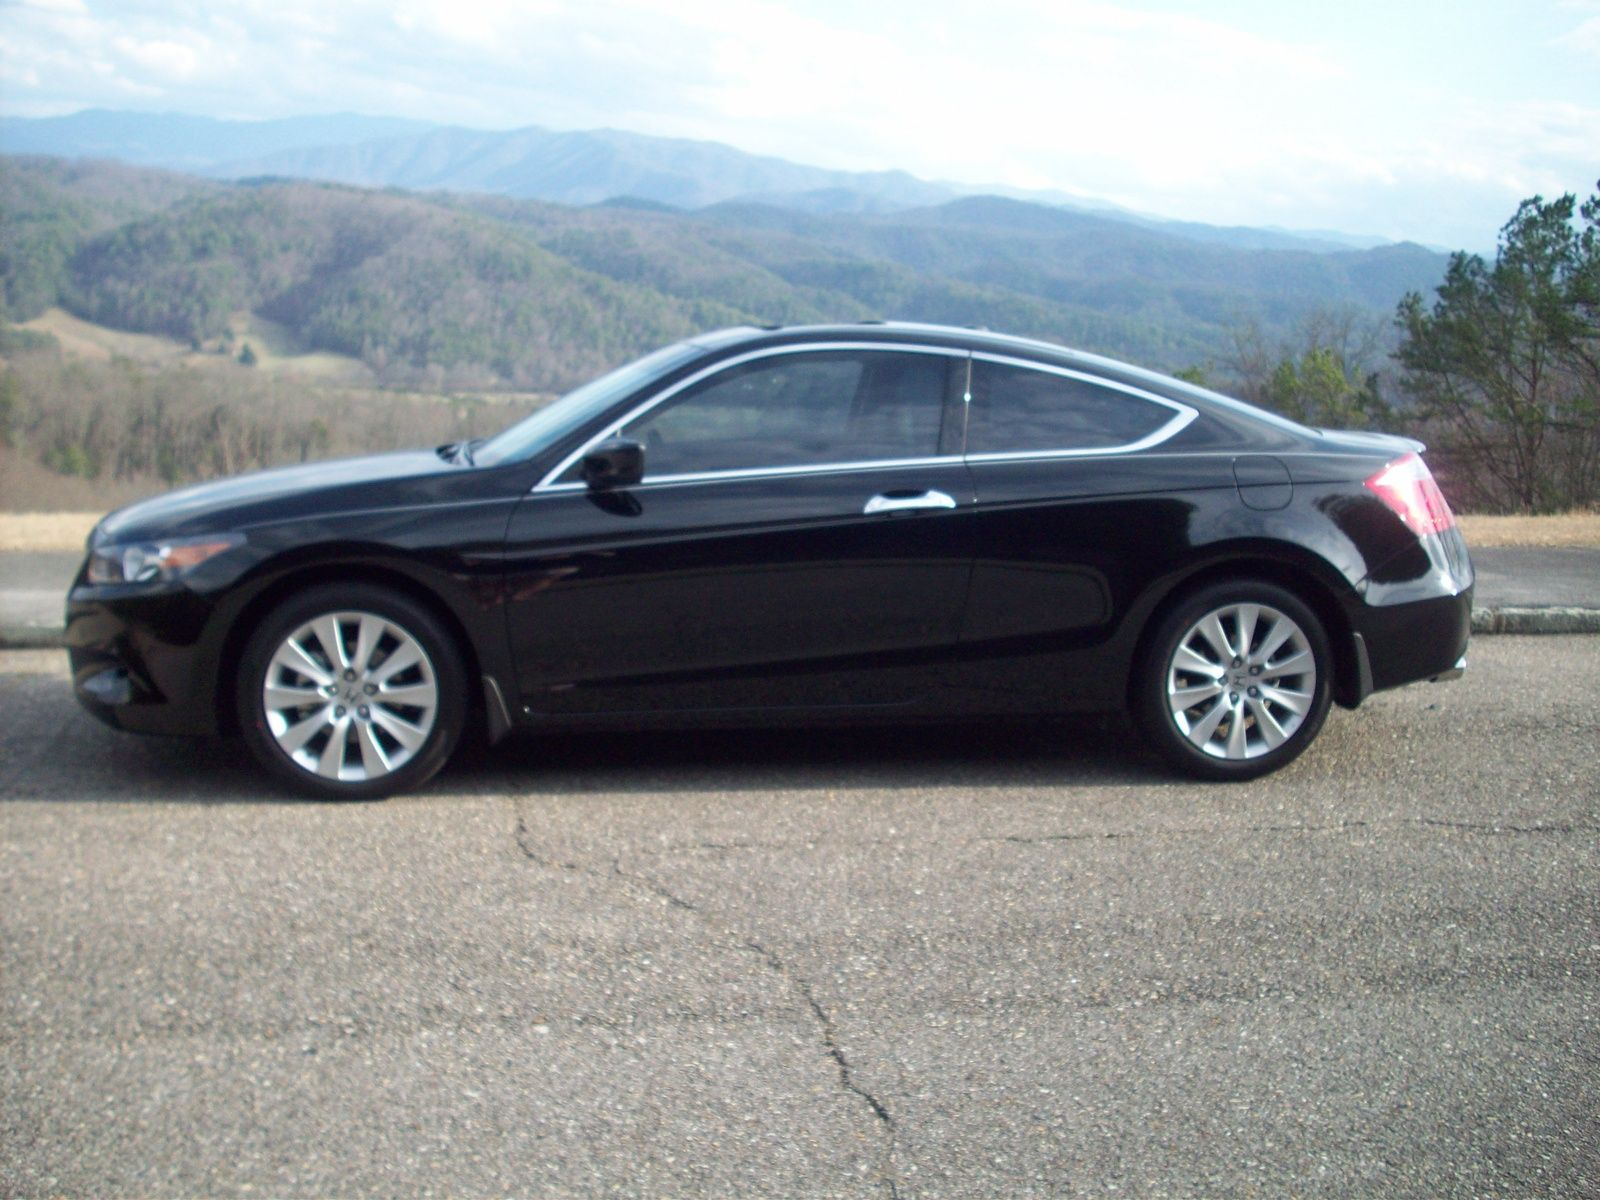 Exceptional 2009 Honda Accord Coupe│Future Candidate